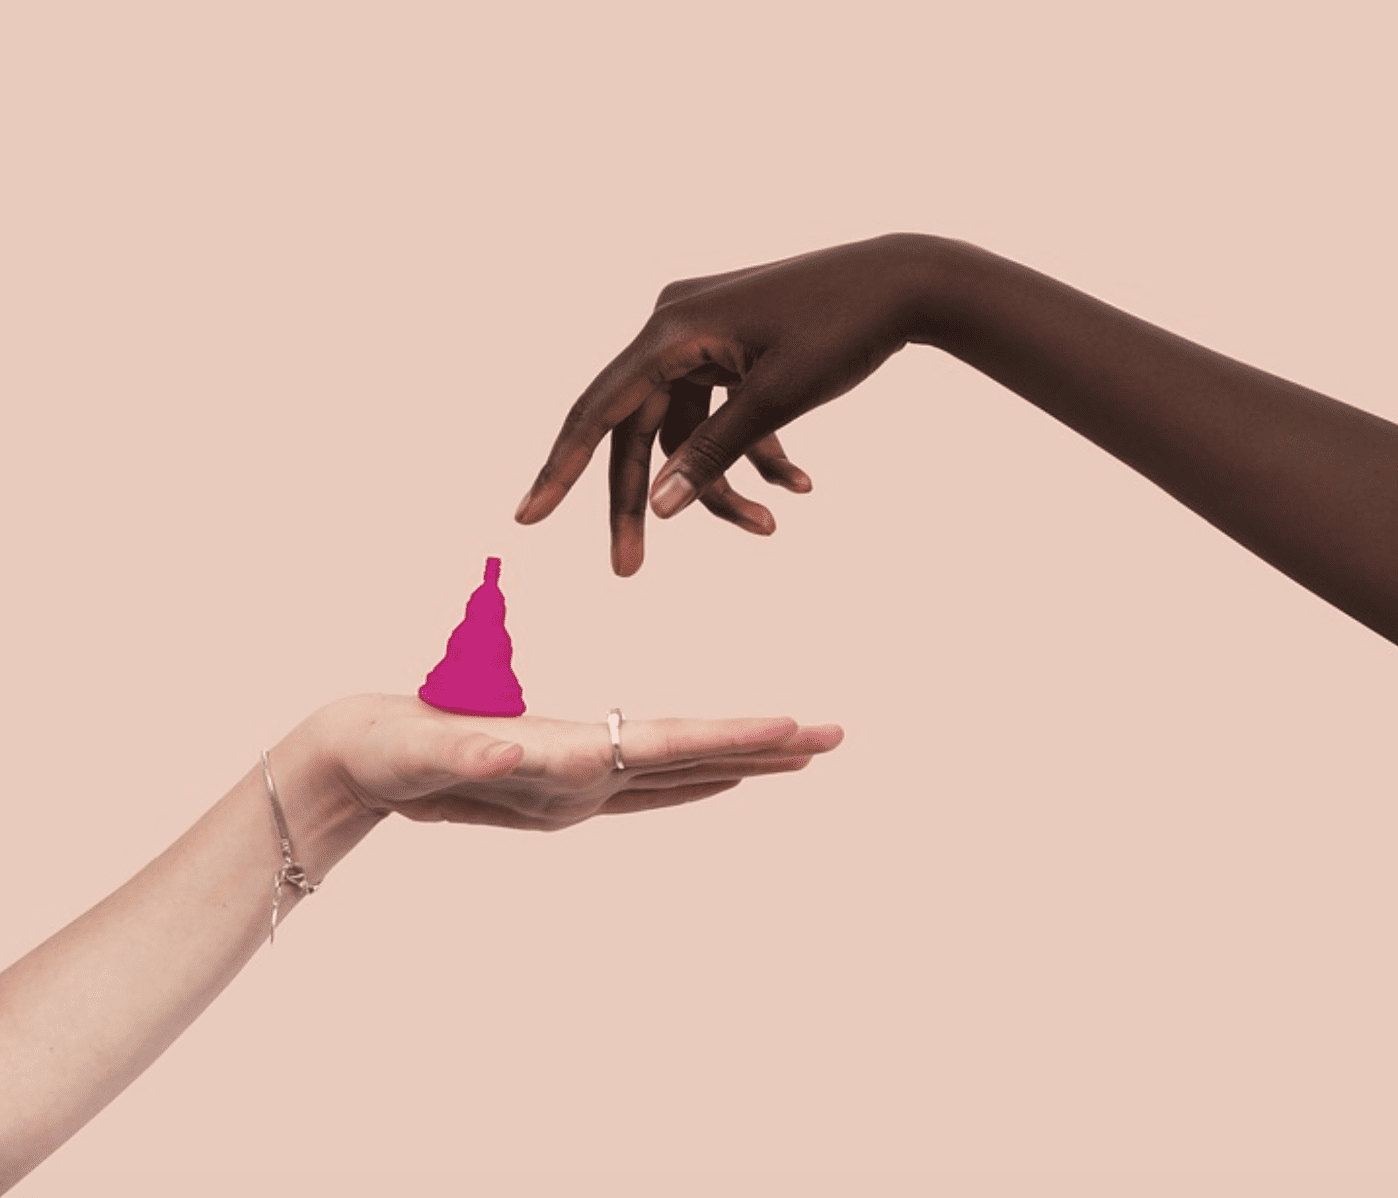 Two women's hands, one balancing a menstrual cup; image by PatriciaMoraleda, via Pixabay.com.